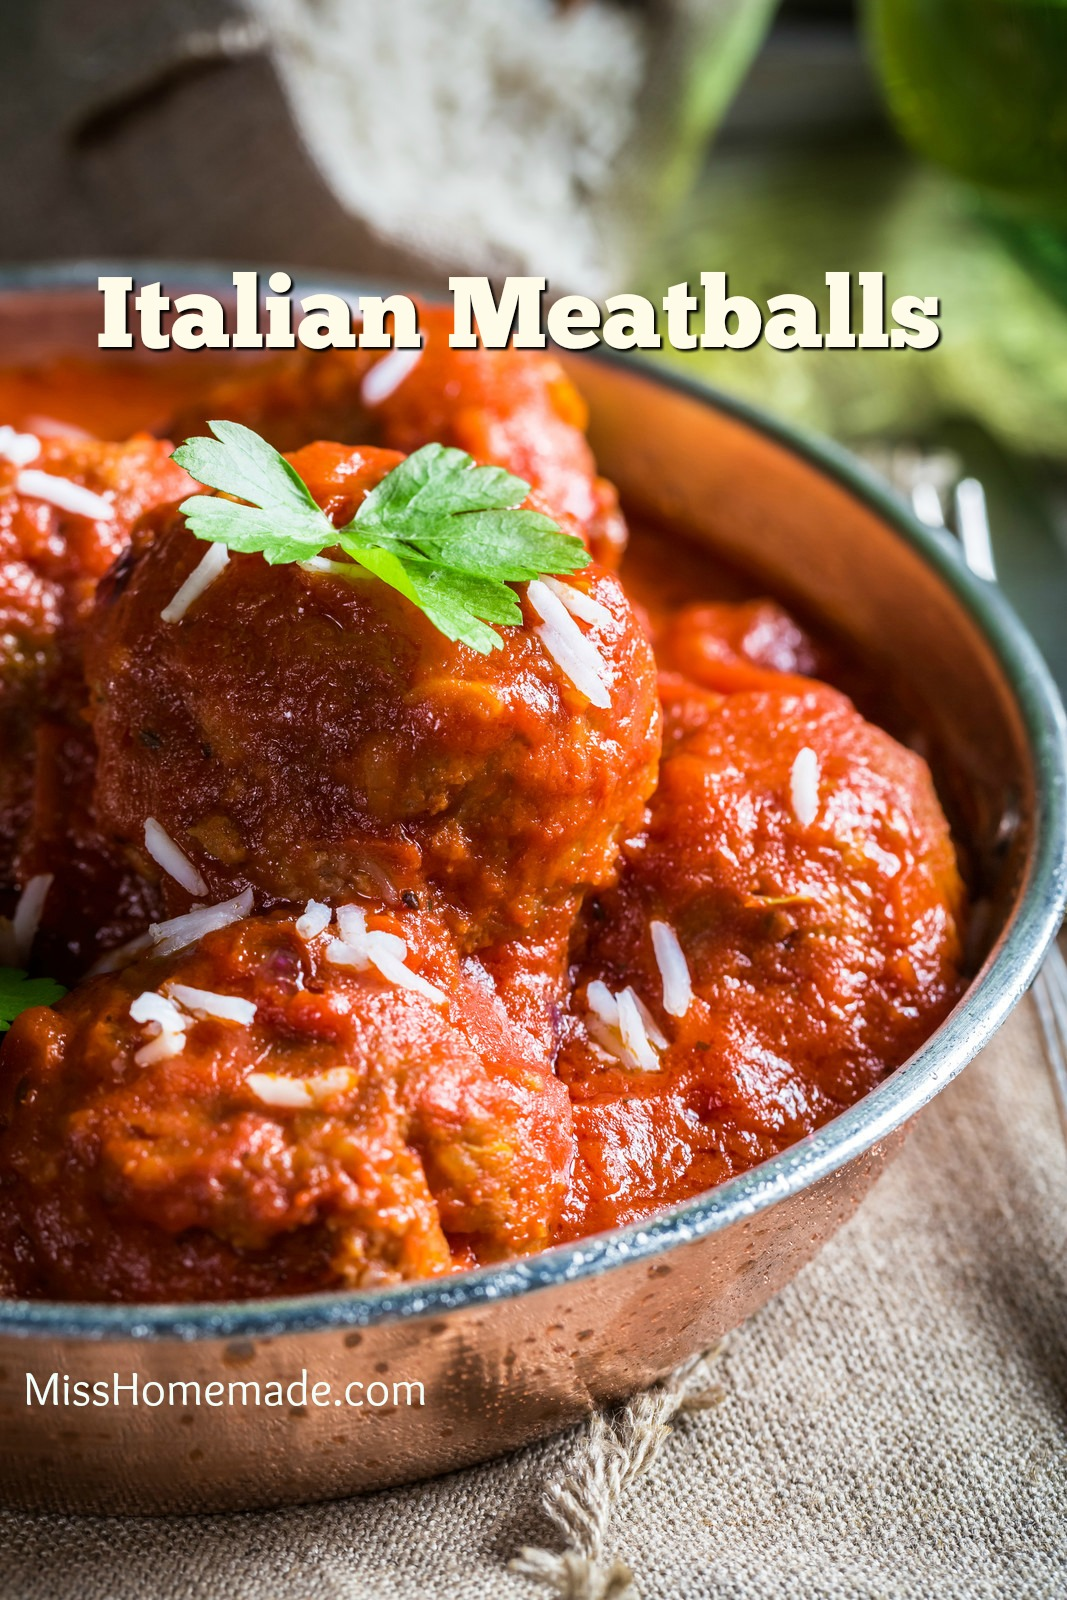 Italian Meatballs - Juicy, seasoned perfectly and so flavorful. Make my homemade sauce to go with them. #misshomemade